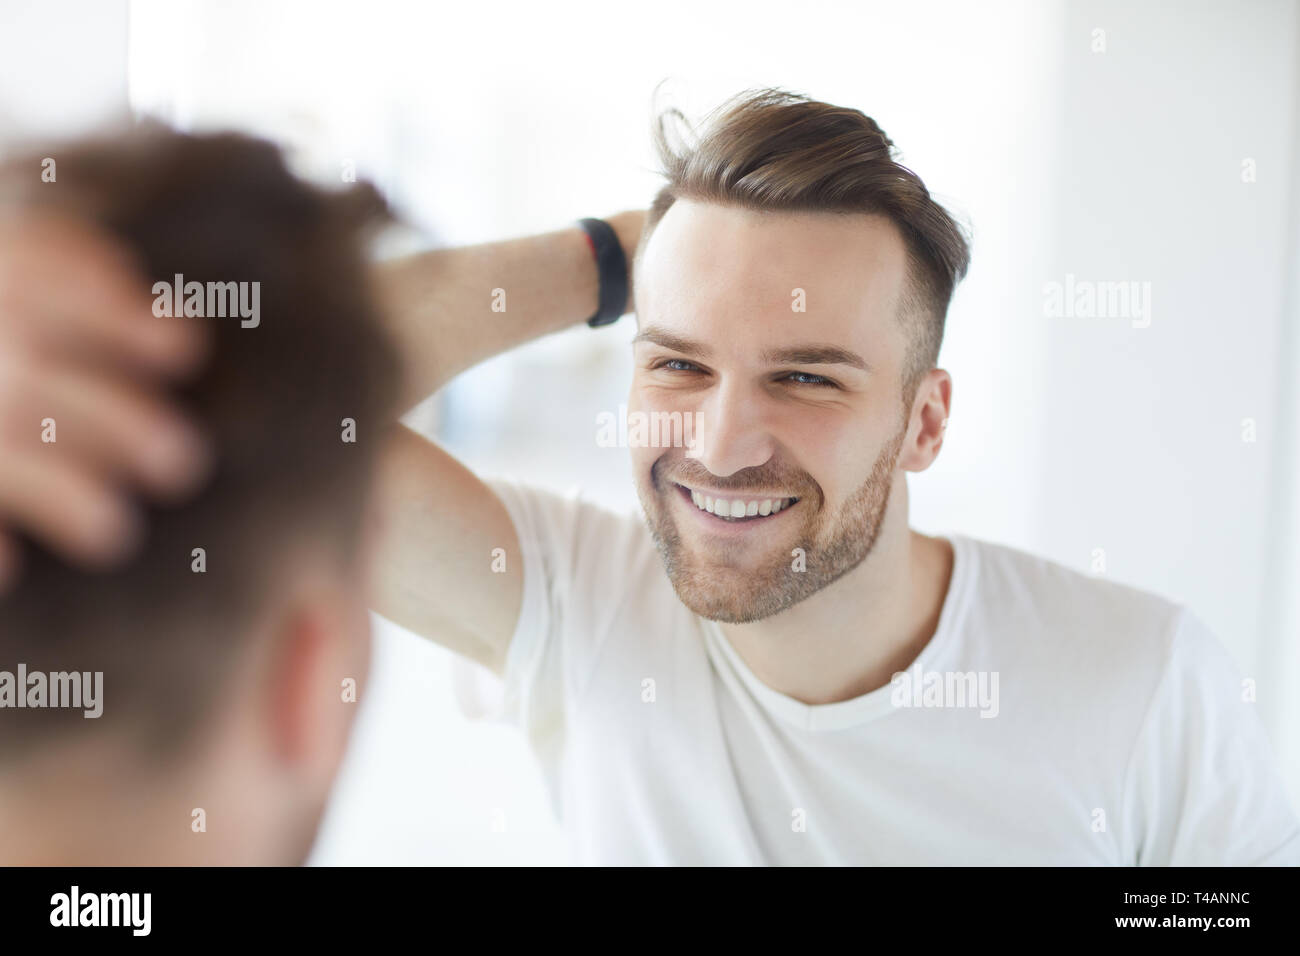 Handsome Man Looking in Mirror - Stock Image